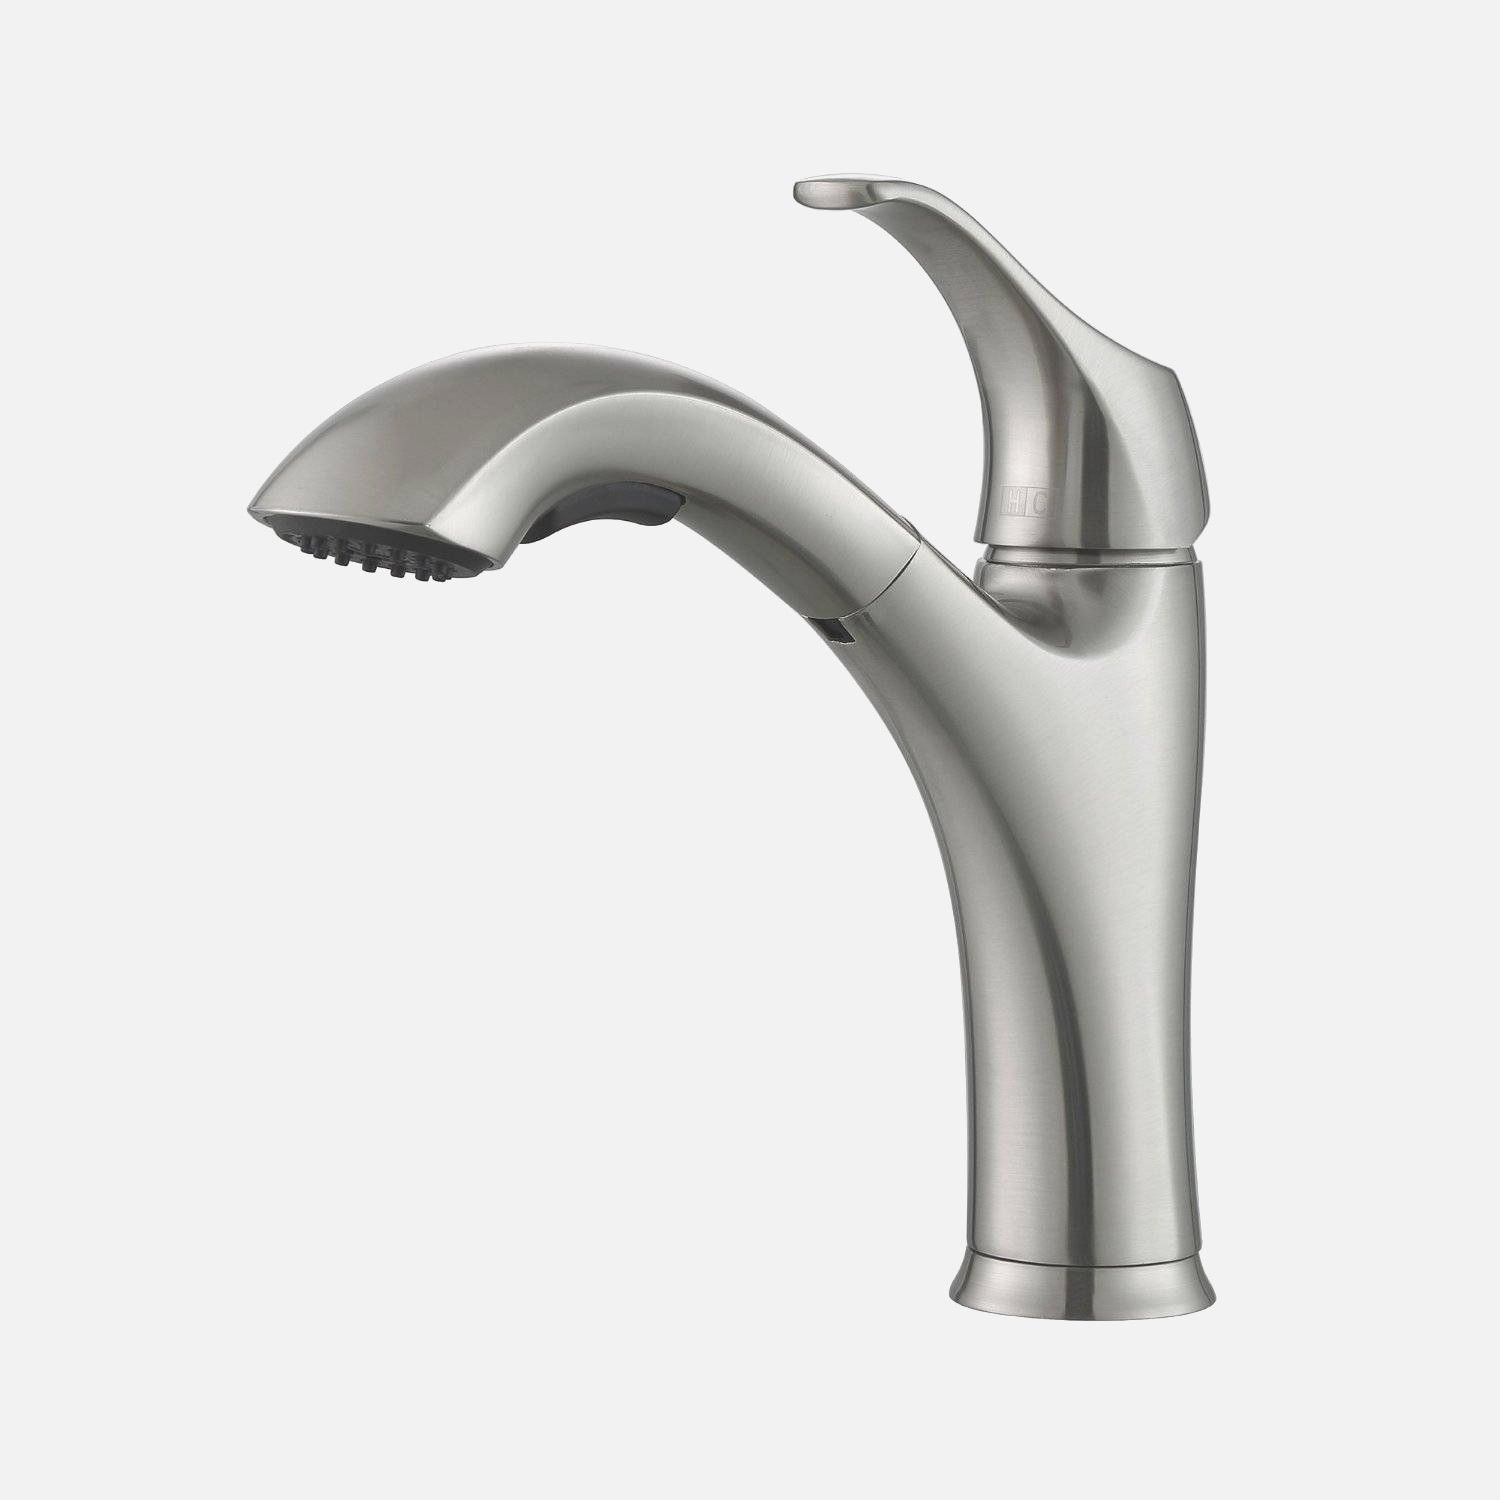 Kohler Single Handle Kitchen Faucet Leaking Wow Blog